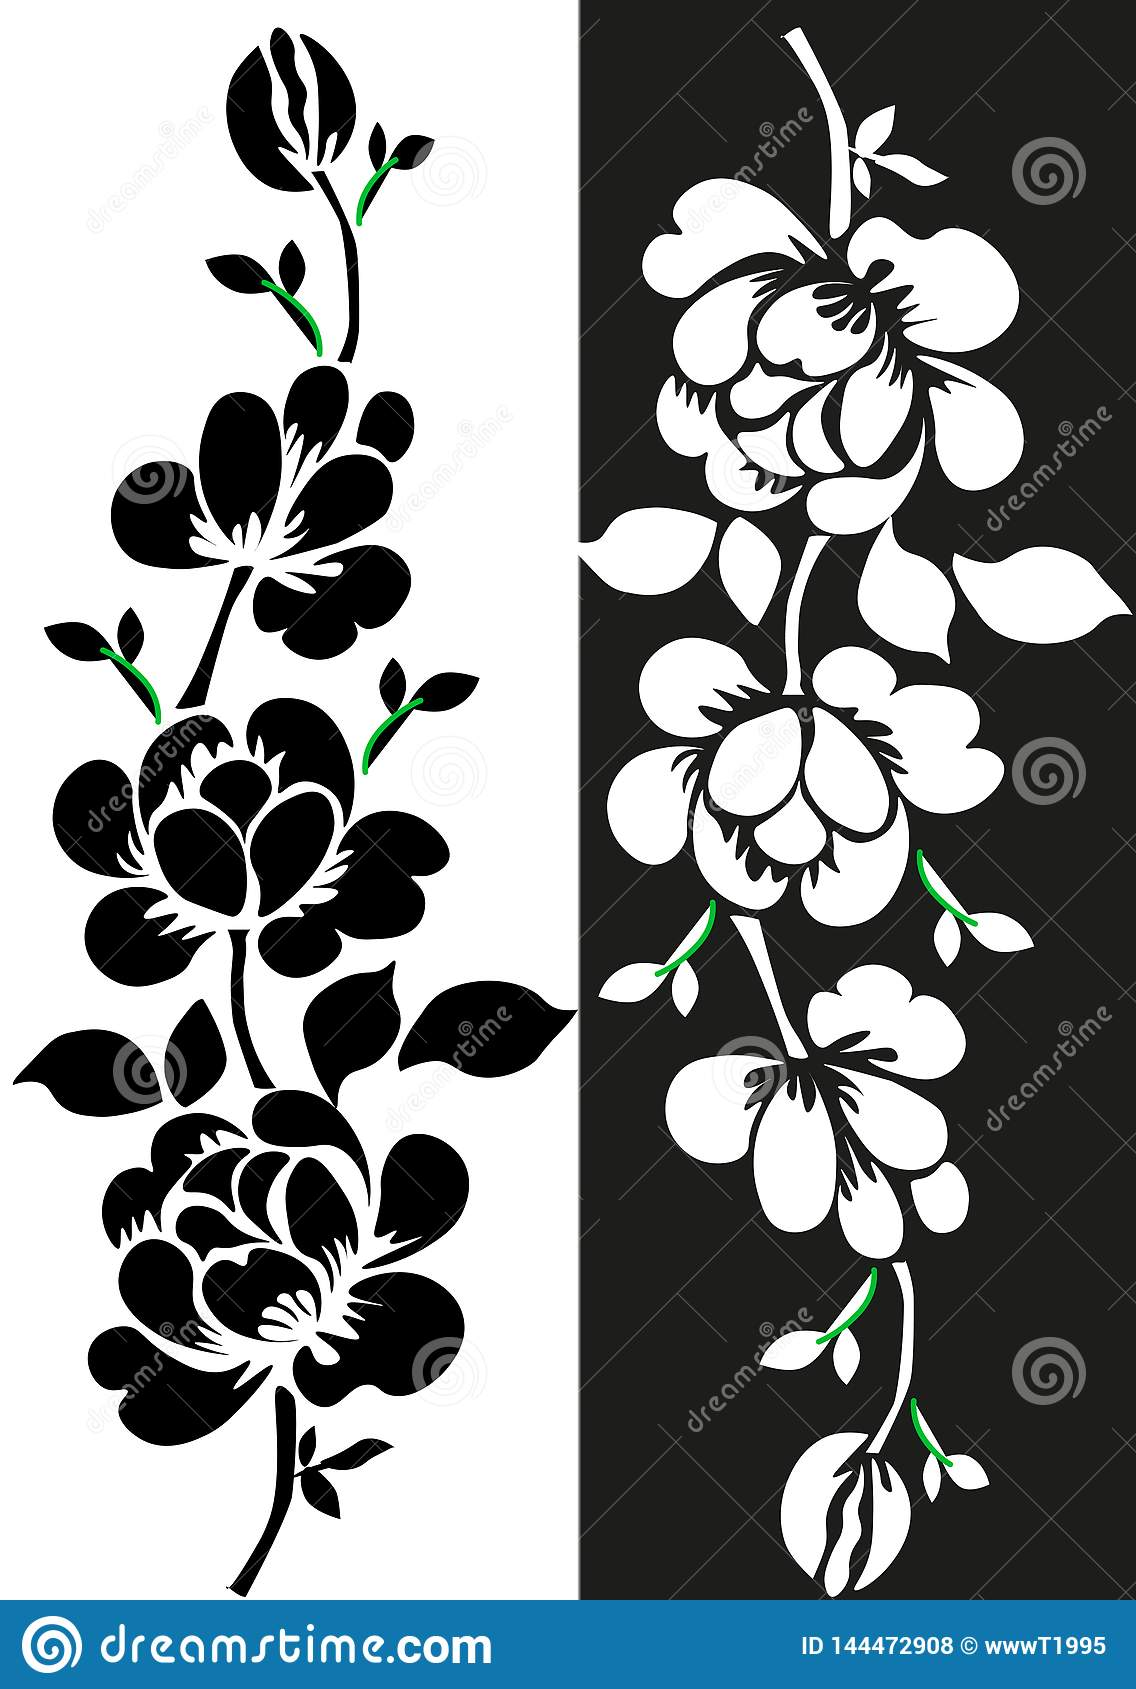 Hand drawn floral seamless pattern with clover silhouettes isolated on white. Cute graphic flower background. Summer concept.